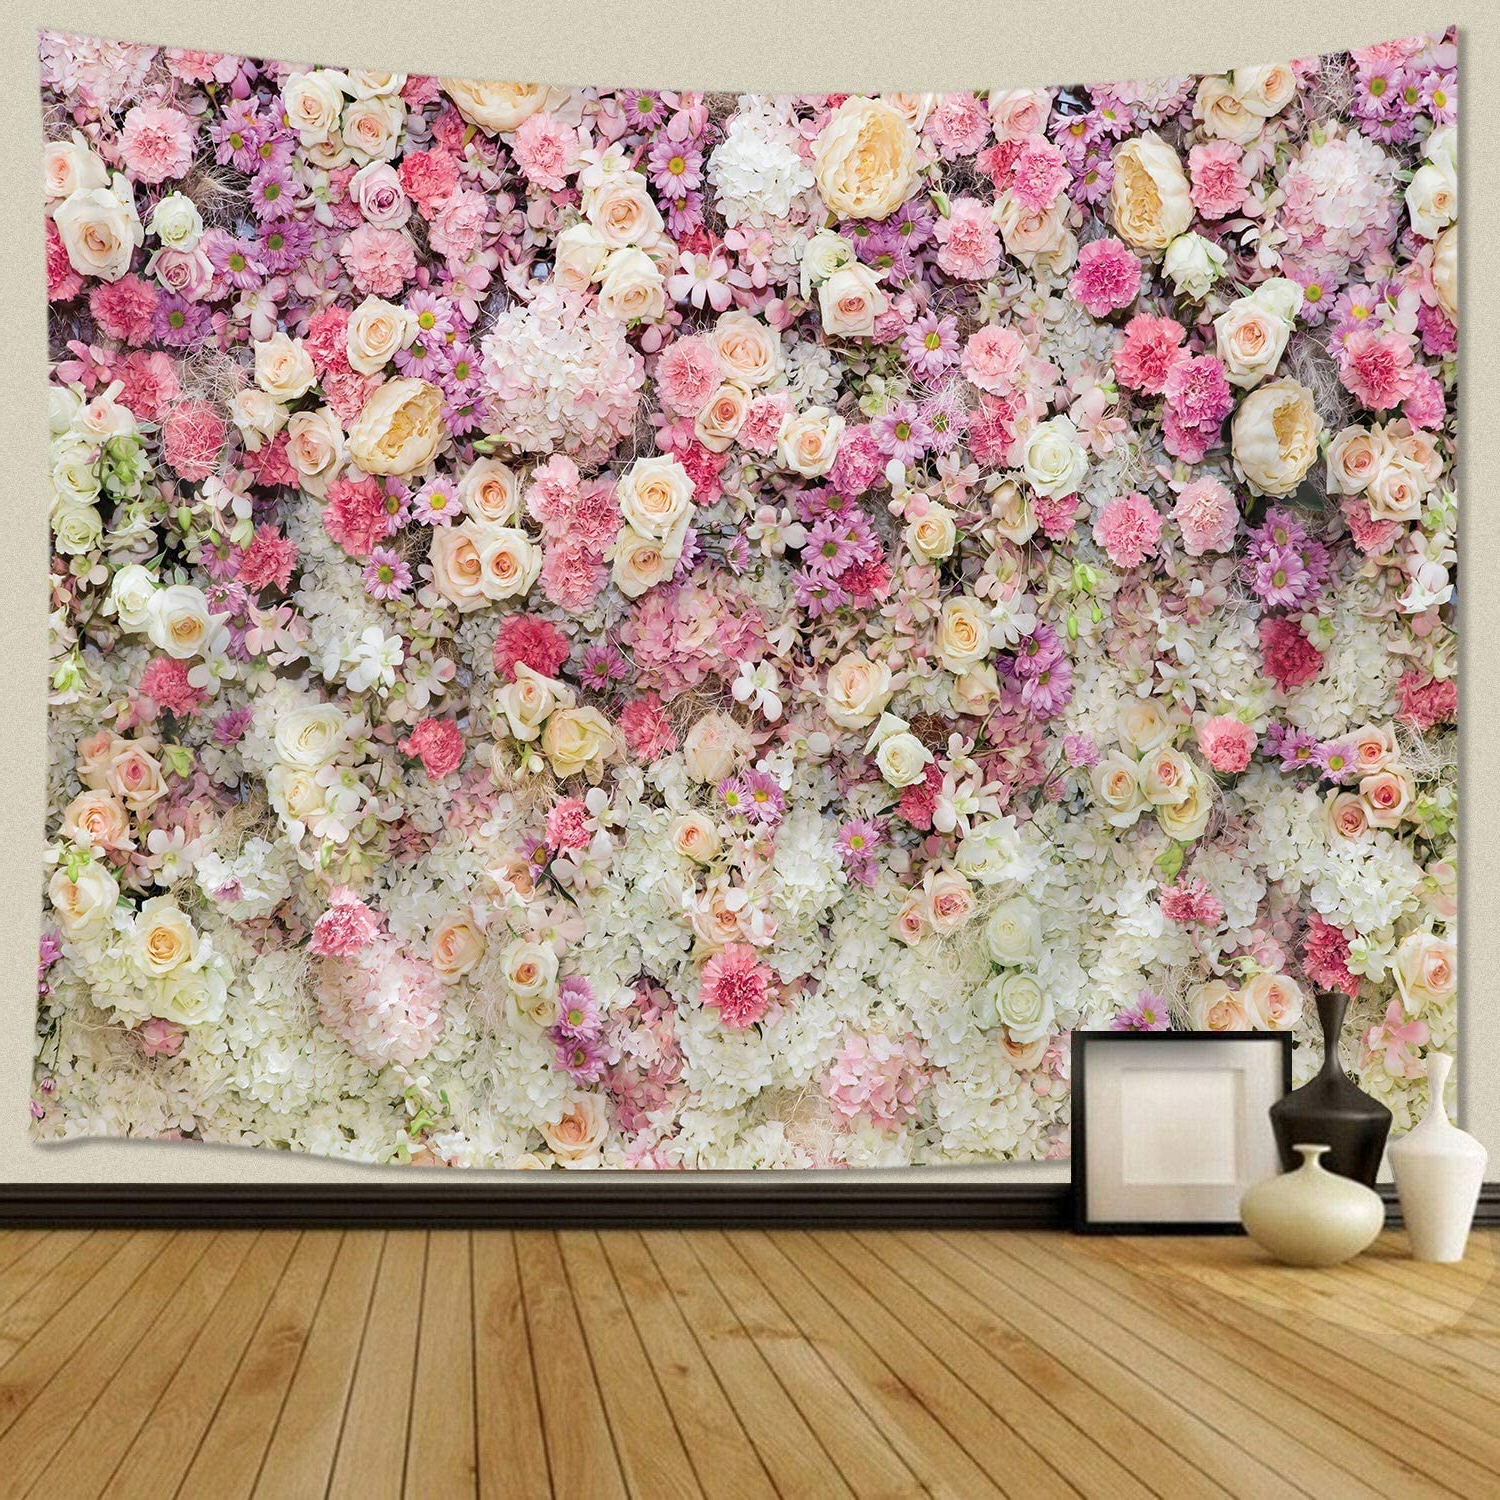 2020 Jawo Floral Wall Tapestry For Girls, Colorful Pink Yellow Rose Flower Tapestry Wall Hanging For Bedroom, Romantic Spring Aesthetic Tapestry Beach Throughout Blended Fabric Fruity Bouquets Wall Hangings (View 20 of 20)